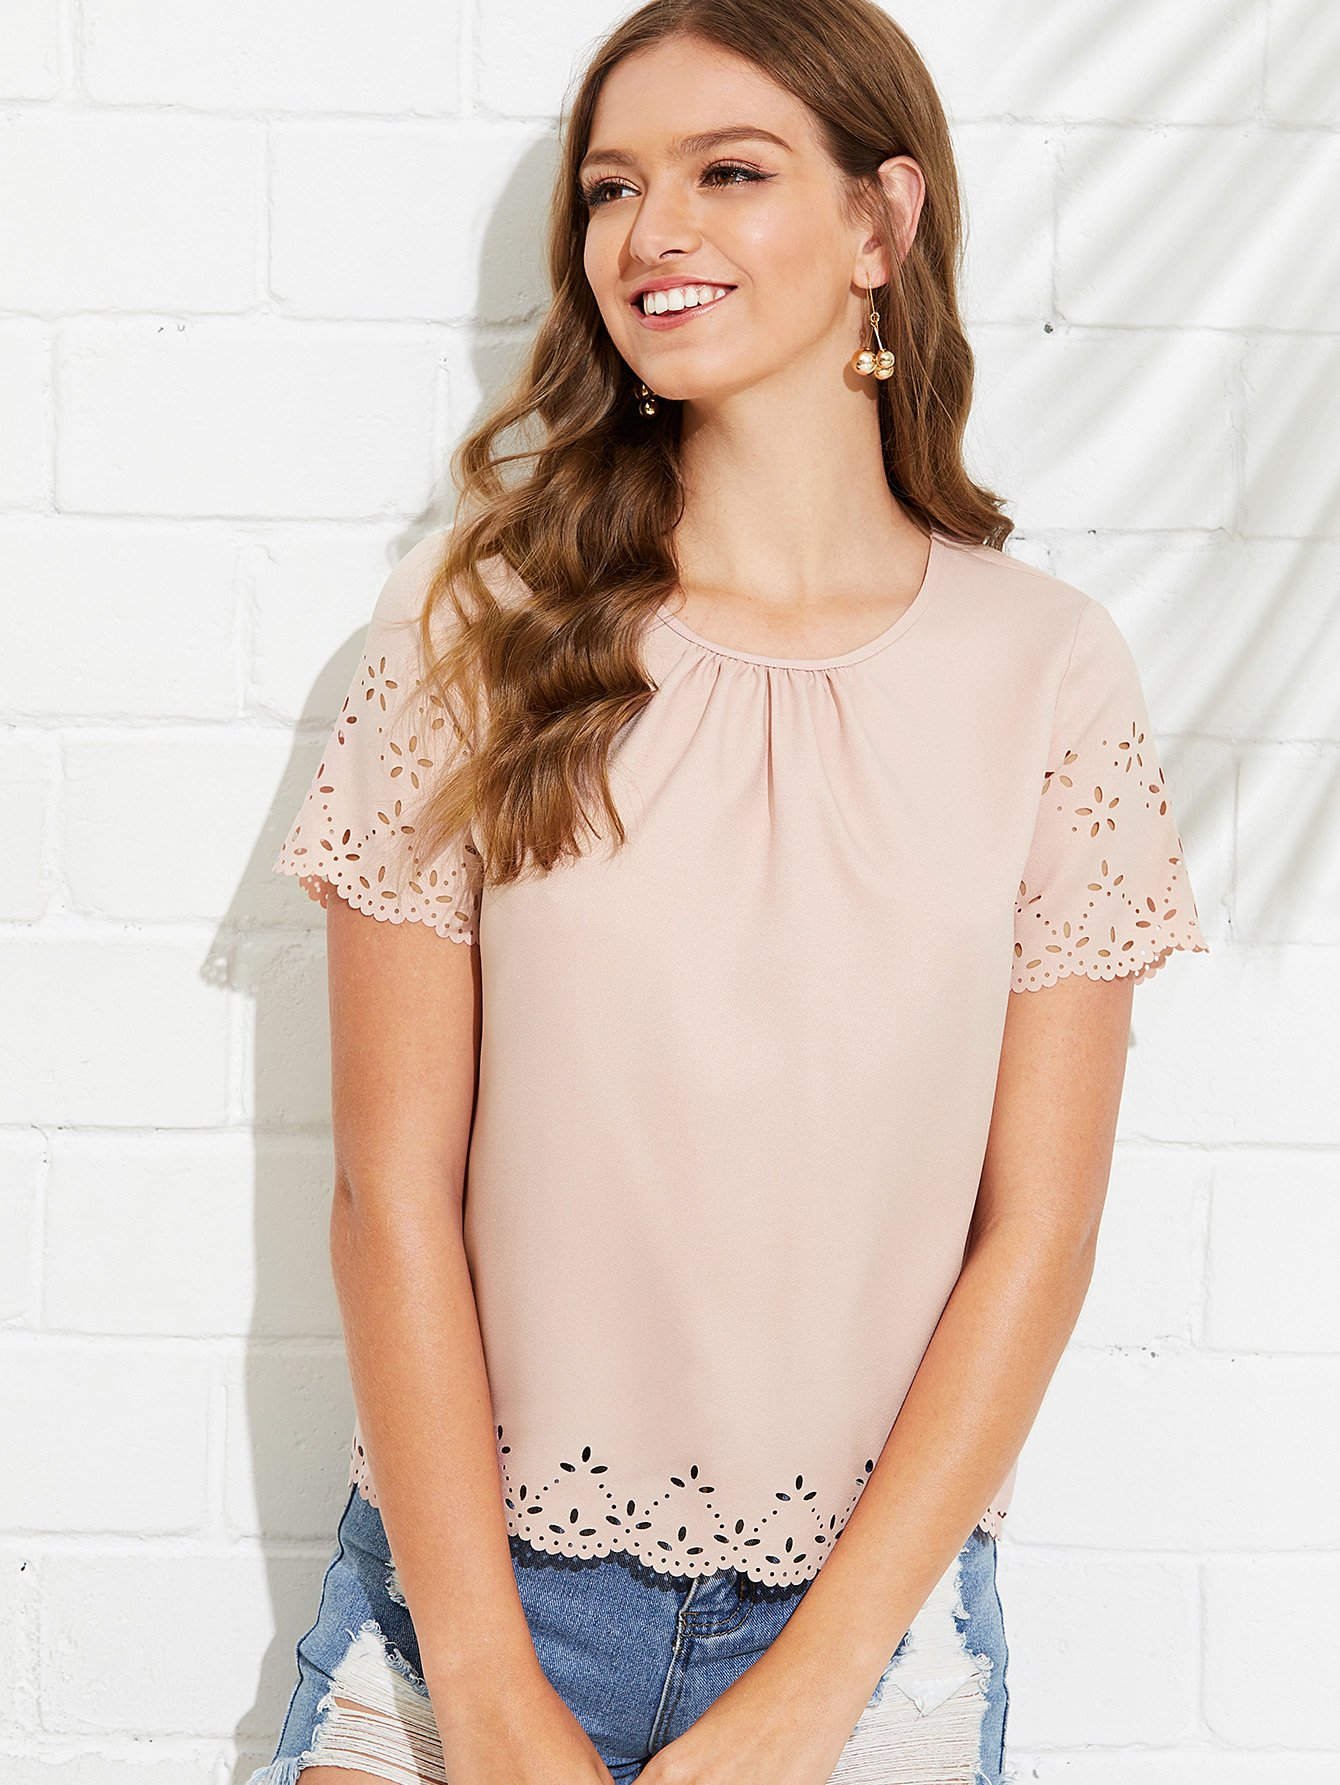 Gathered Neck Scallop Laser Cut Top gathered neck floral sleeveless top